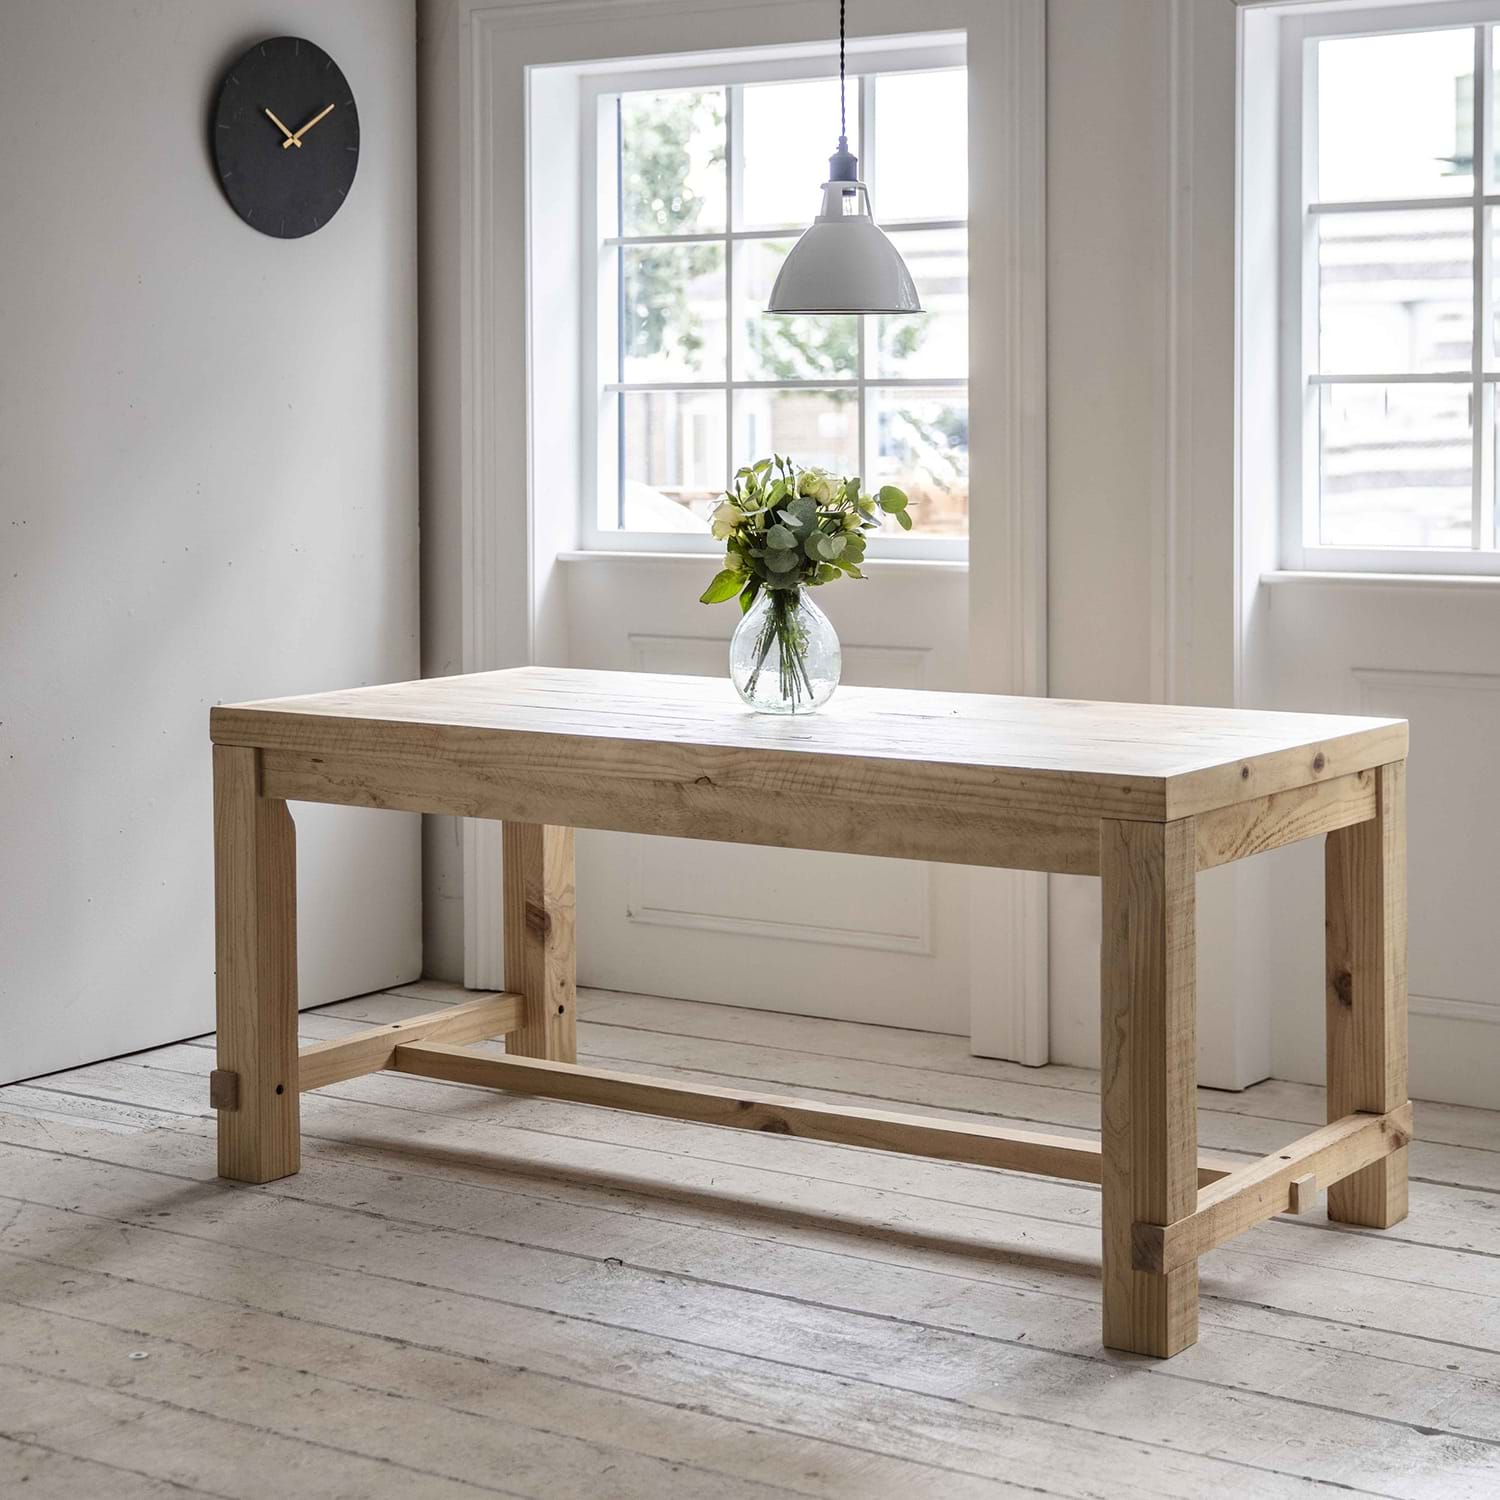 Image of Garden Trading Brookville Table, Large, Pine